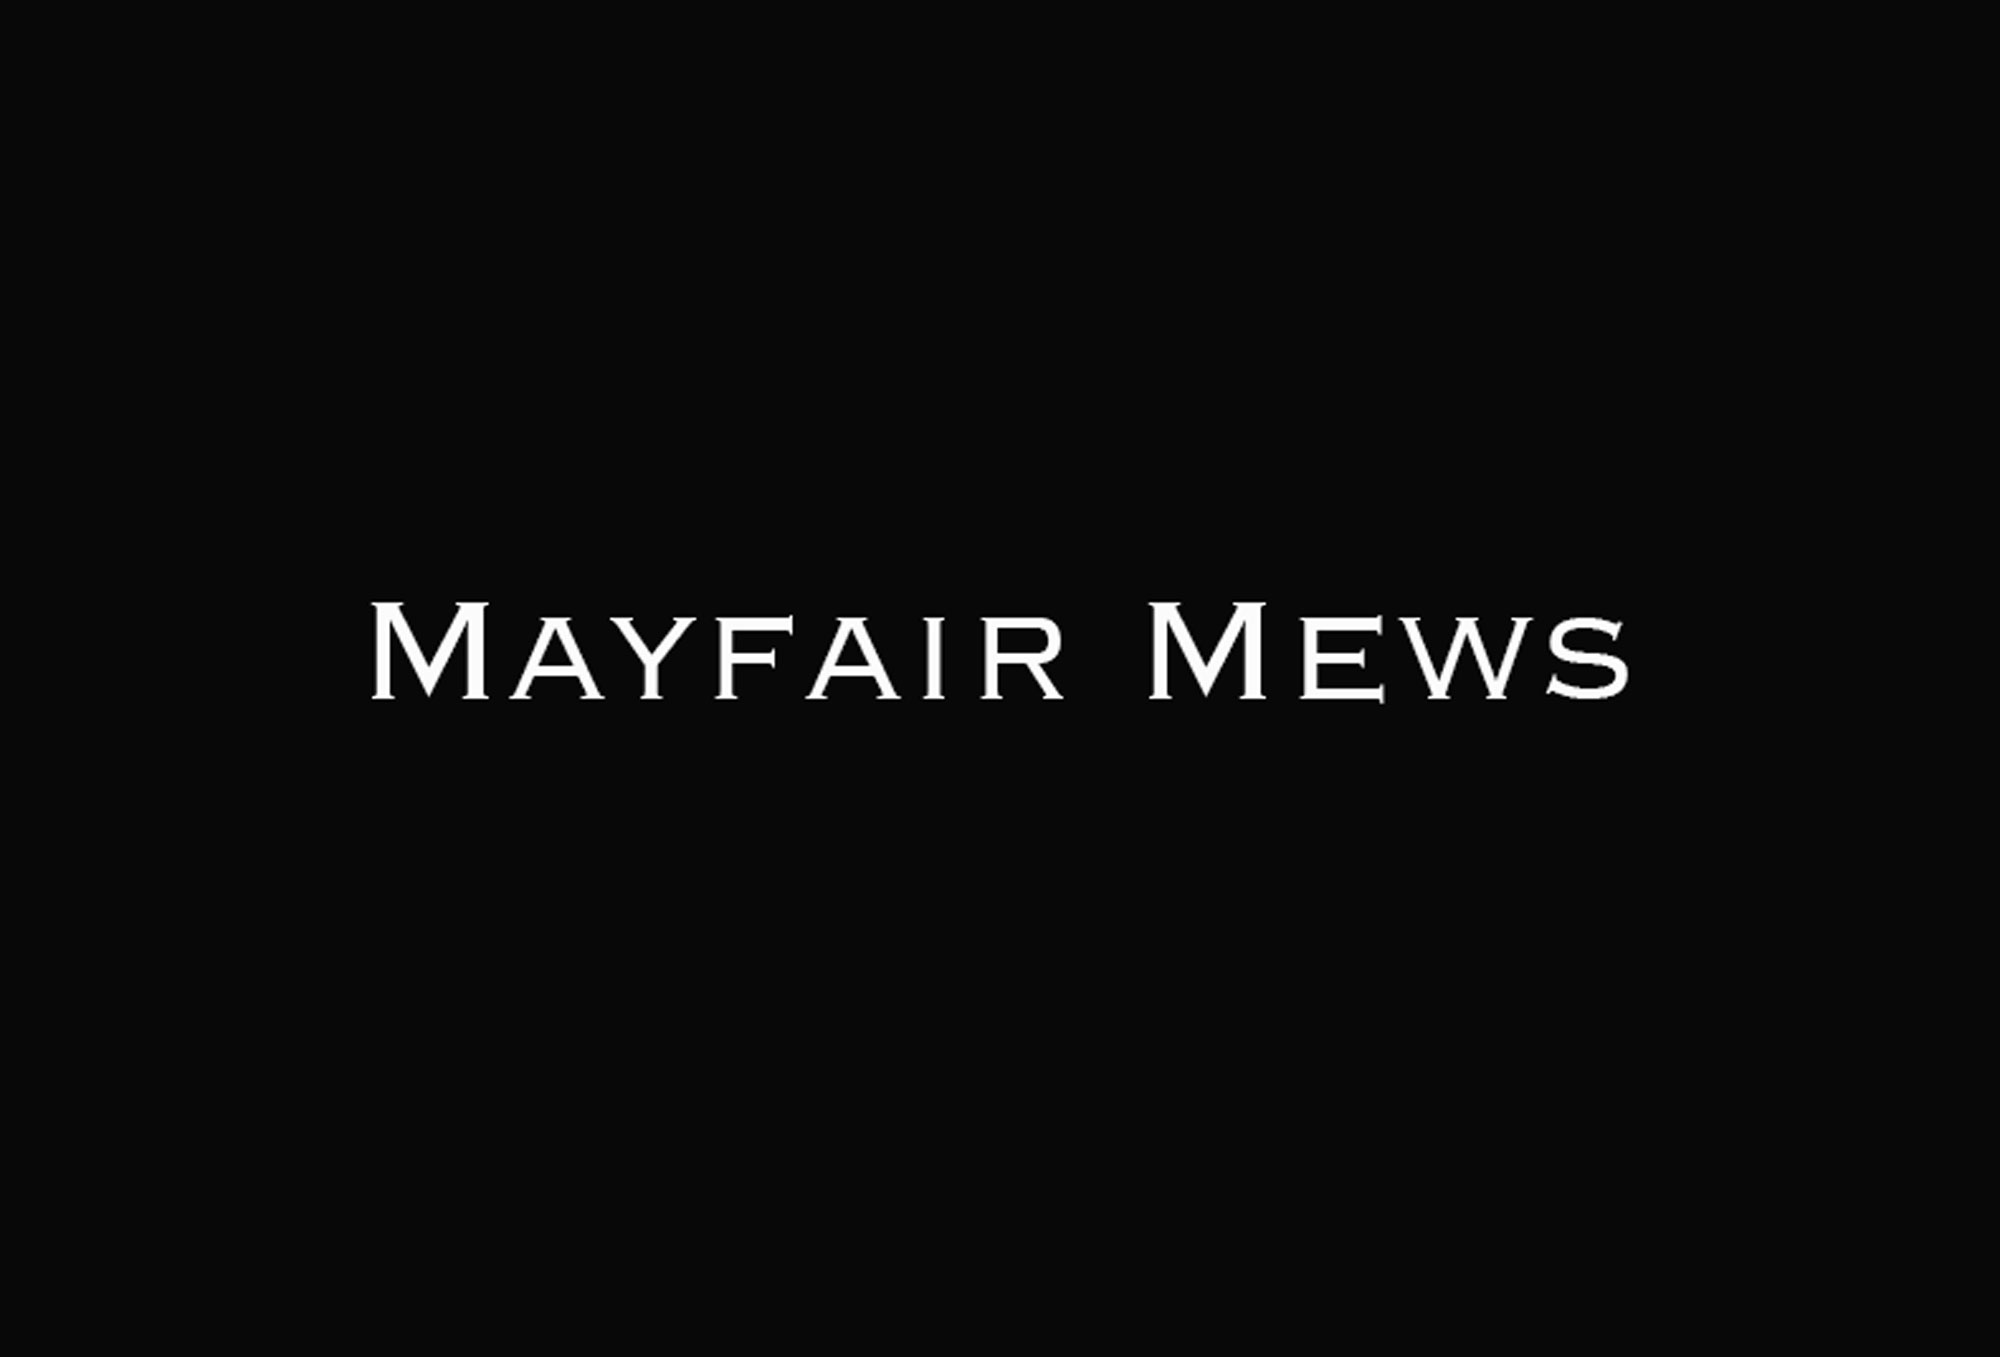 Mayfair Mews